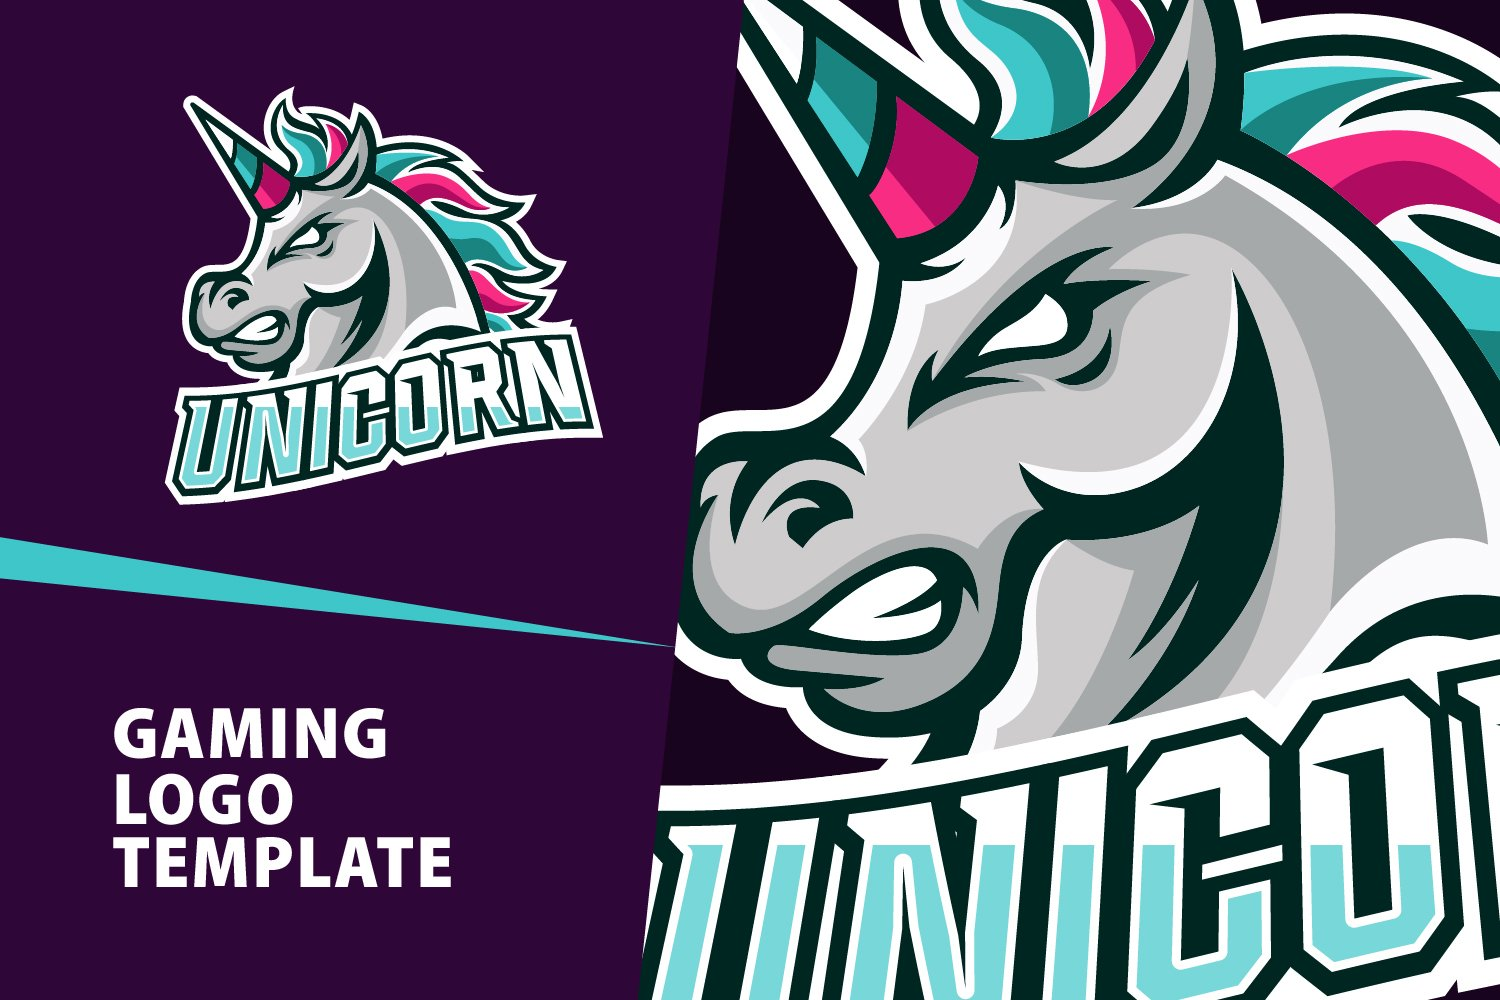 Unicorn Gaming Logo Template 511372 Logos Design Bundles